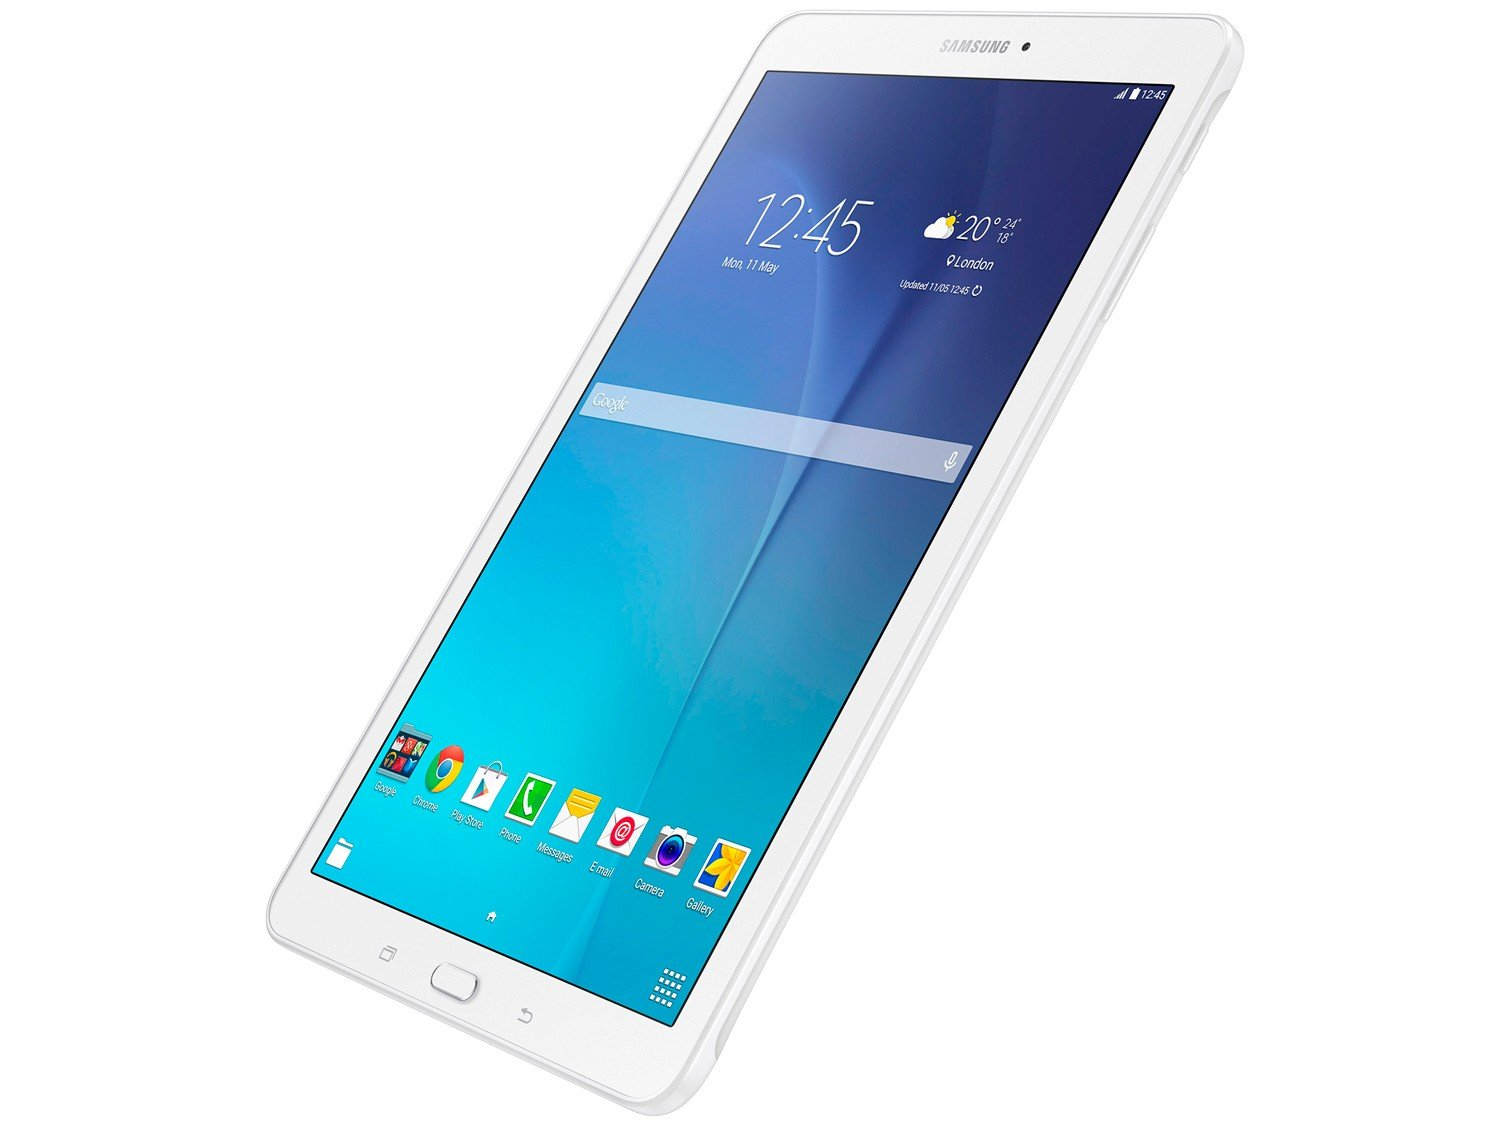 Foto 7 - Tablet Samsung Galaxy Tab E T560 8GB 9,6 Wi-Fi - Android 4.4 Proc. Quad Core Câm. 5MP + Frontal